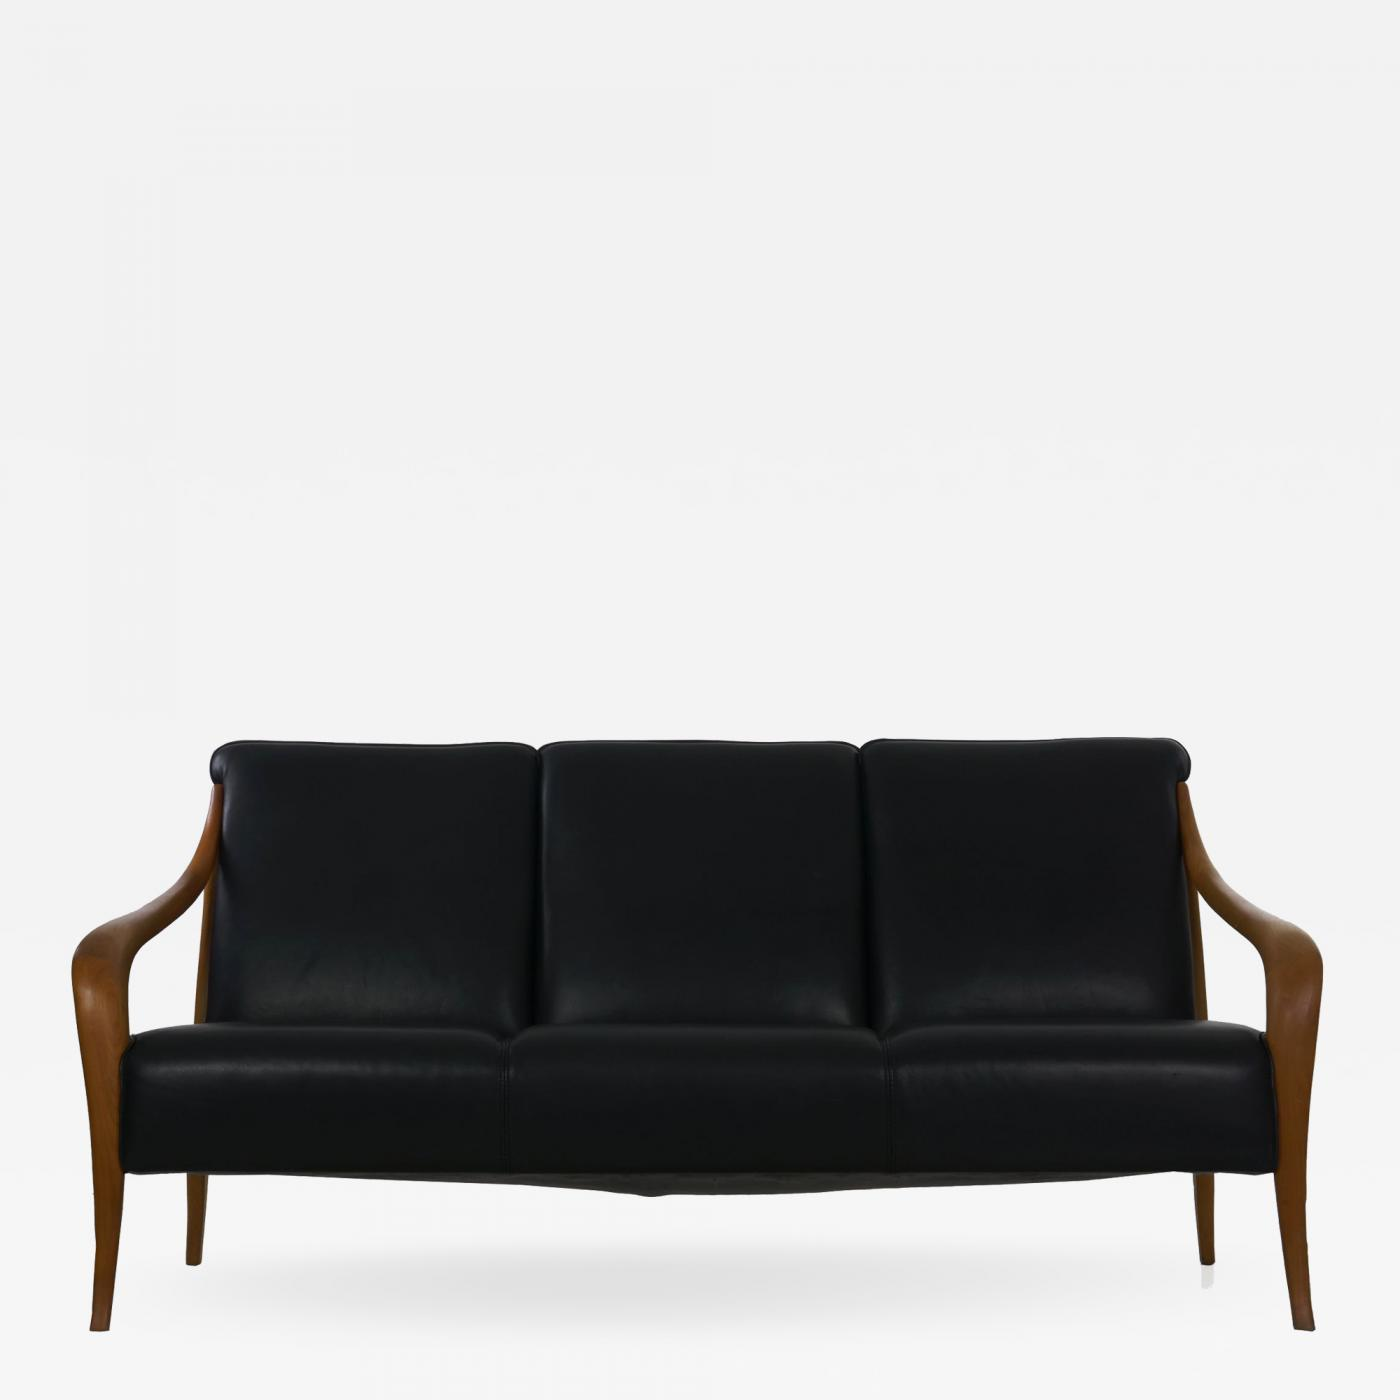 Danish Mid Century Modern Style Sculpted Teak Black Leather Sofa ...